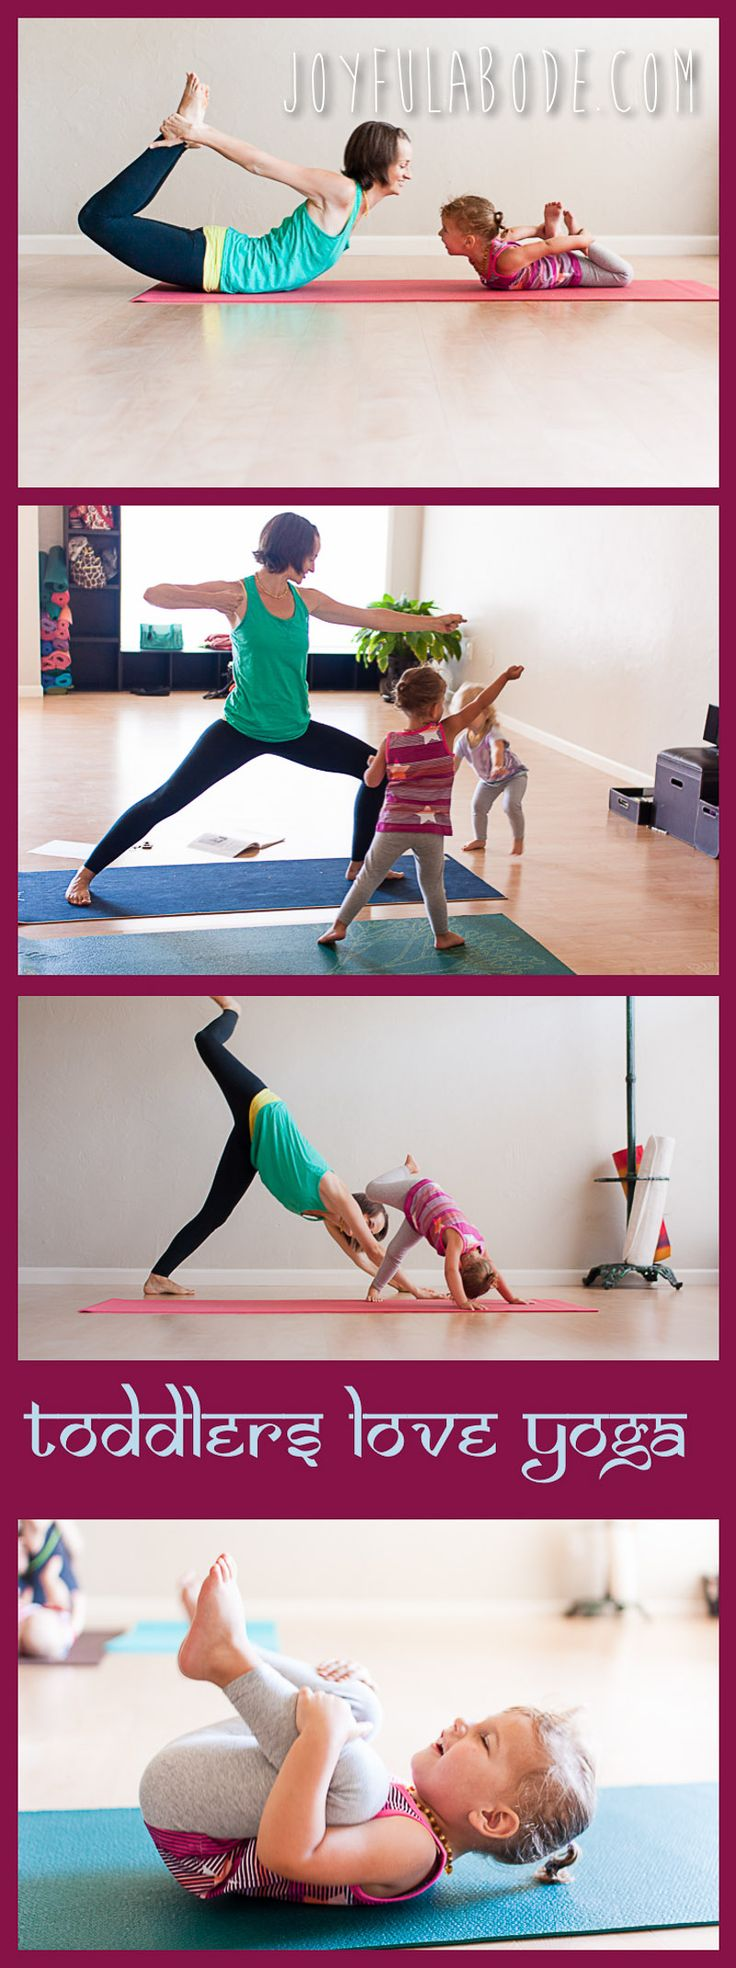 I've started doing yoga every morning with my 3 year old daughter before work & school & she loves it :)